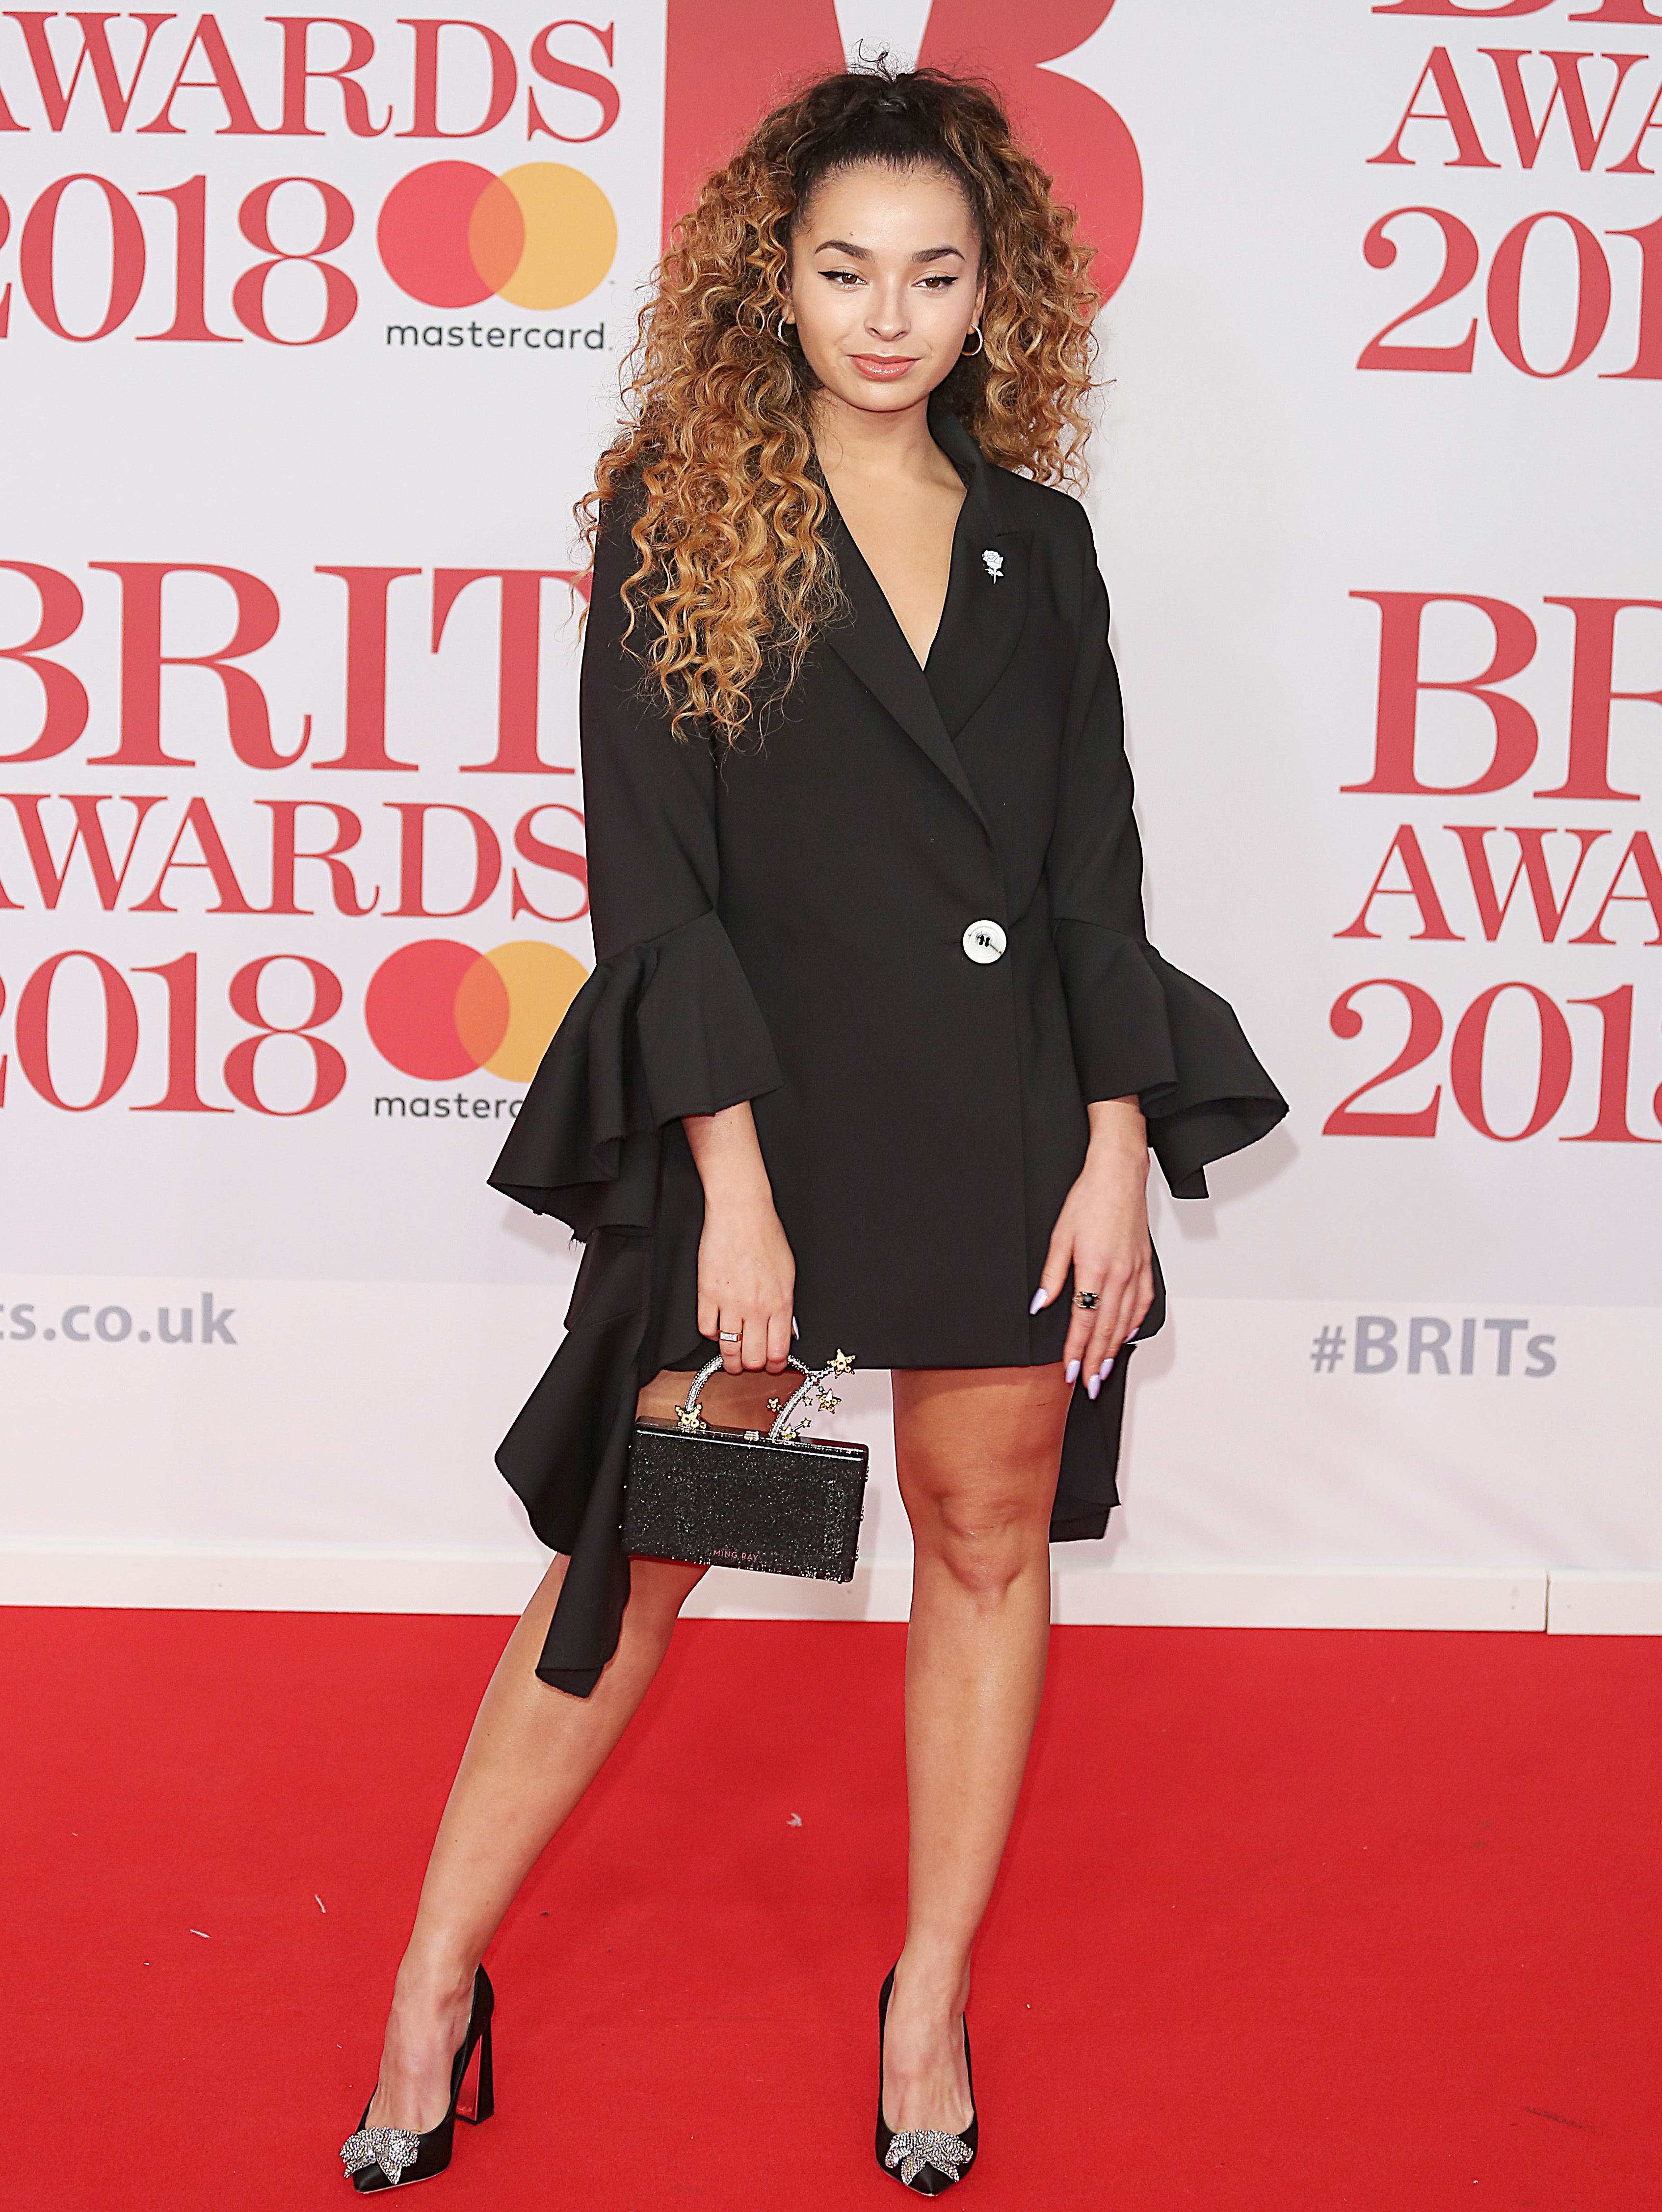 The BRIT Awards 2018, 02 Arena, London UK, 21 February 2018, Photo by Brett D. Cove <P> Pictured: Ella Eyre <B>Ref: SPL1662674  220218  </B><BR/> Picture by: Brett D. Cove / Splash News<BR/> </P><P> <B>Splash News and Pictures</B><BR/> Los Angeles:	310-821-2666<BR/> New York:	212-619-2666<BR/> London:	870-934-2666<BR/> <span id=